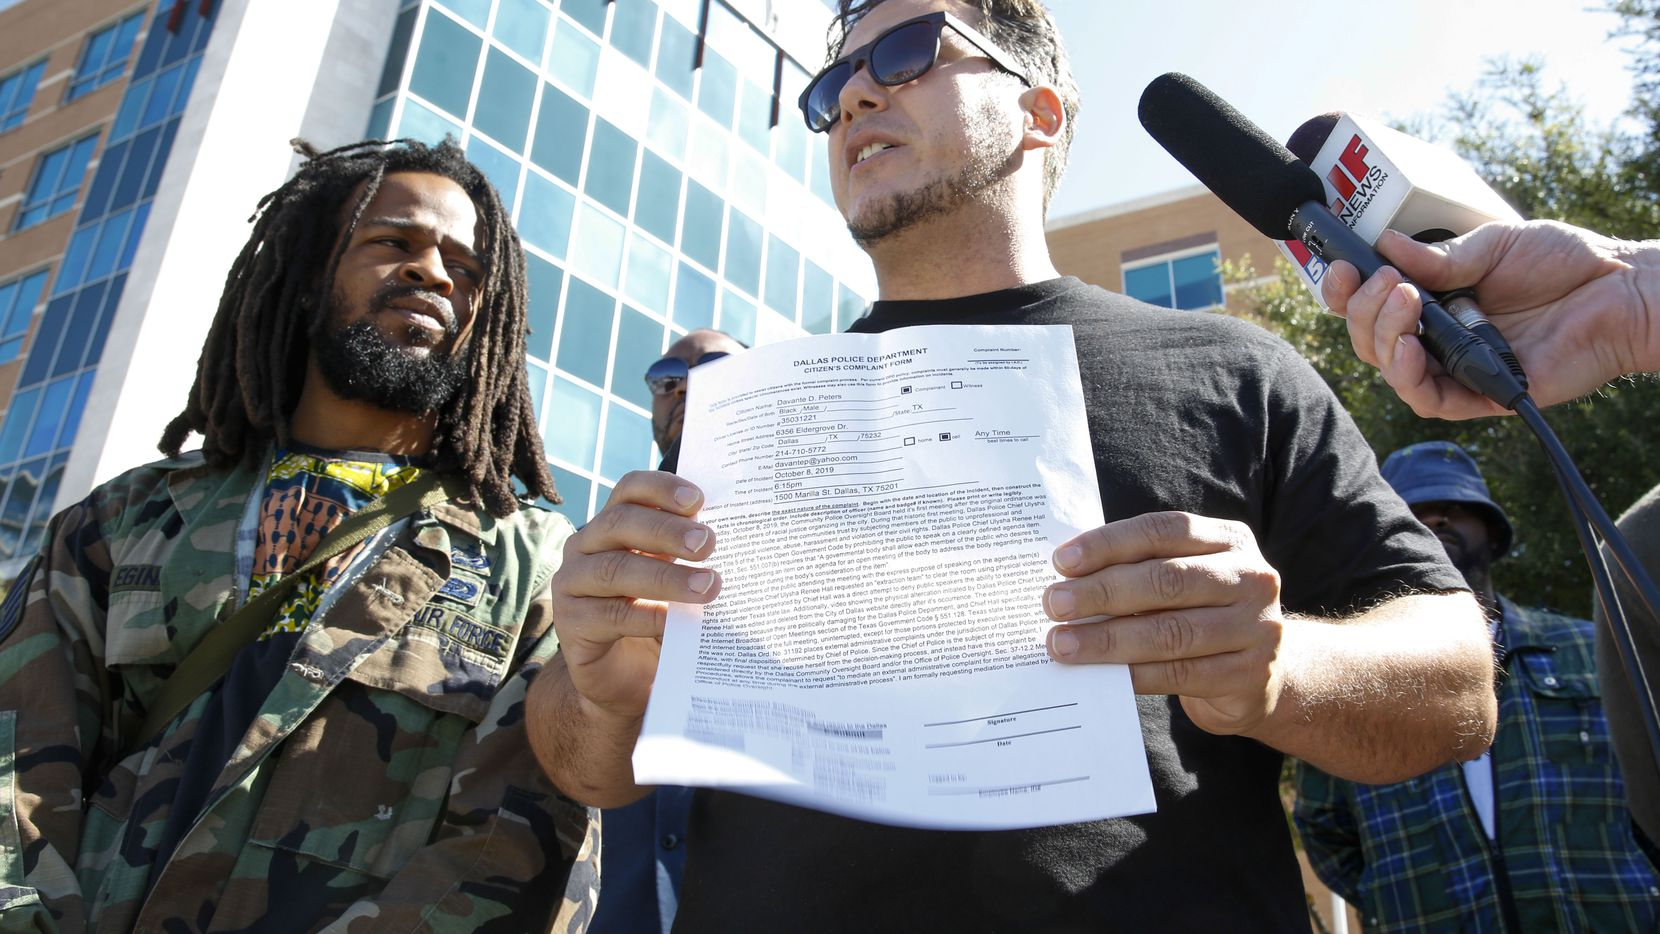 Stephen Benavides from Dallas Communities Organizing for Change holds up an official complaint against Dallas Police Chief U. Reneé Hall  with Davante D. Peters of Community Engagement Specialist (Brian Elledge/Staff Photographer)